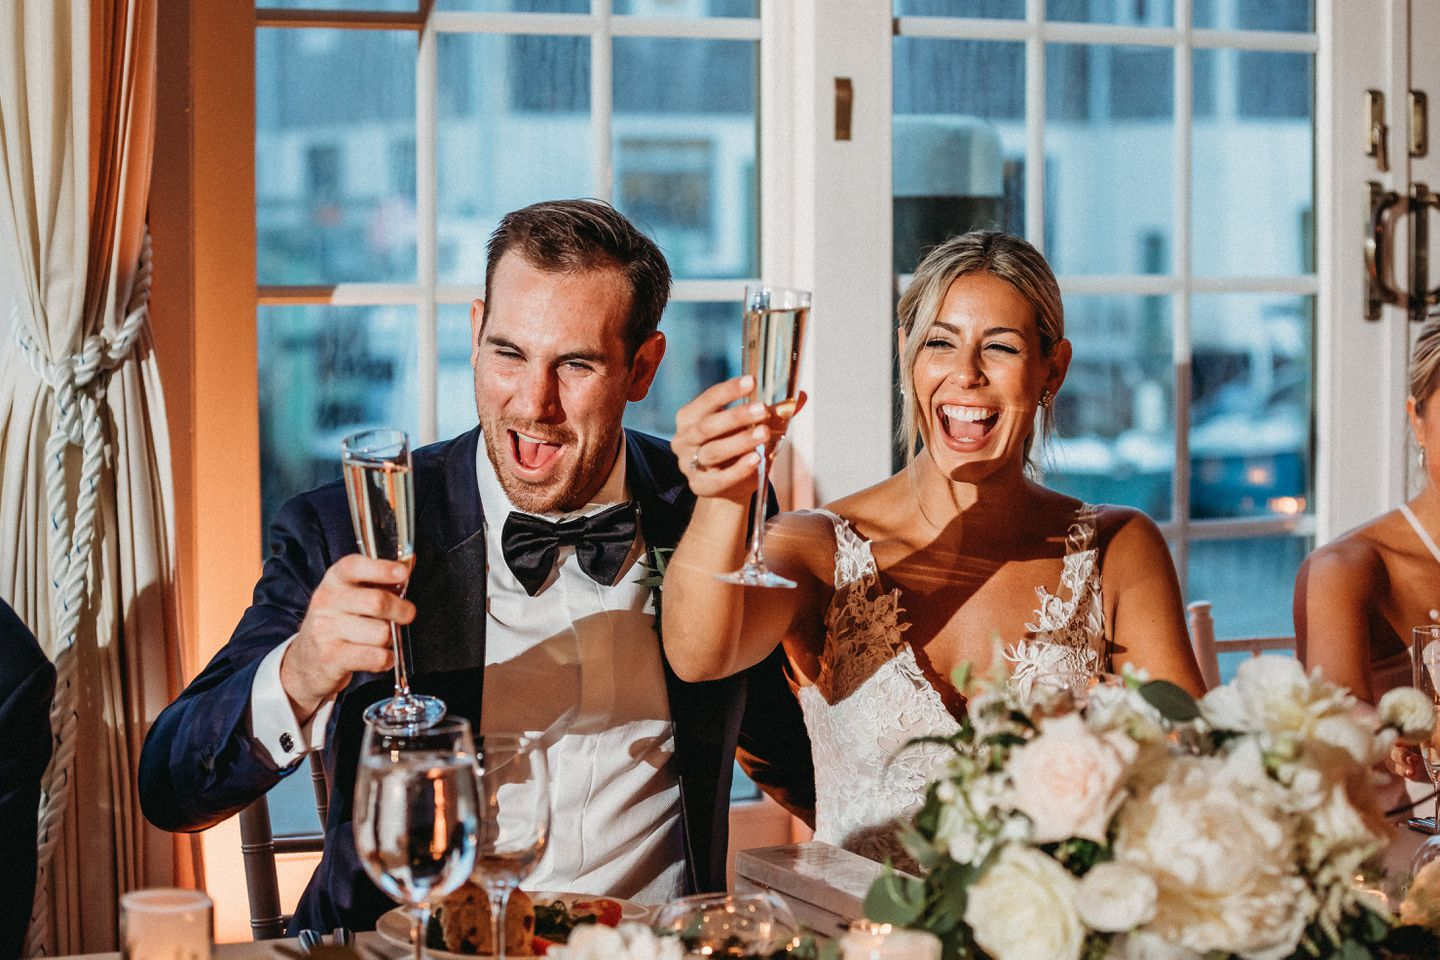 Newlyweds Jimmy and Kristen Hayes lift their glasses for a toast during their wedding reception last July.